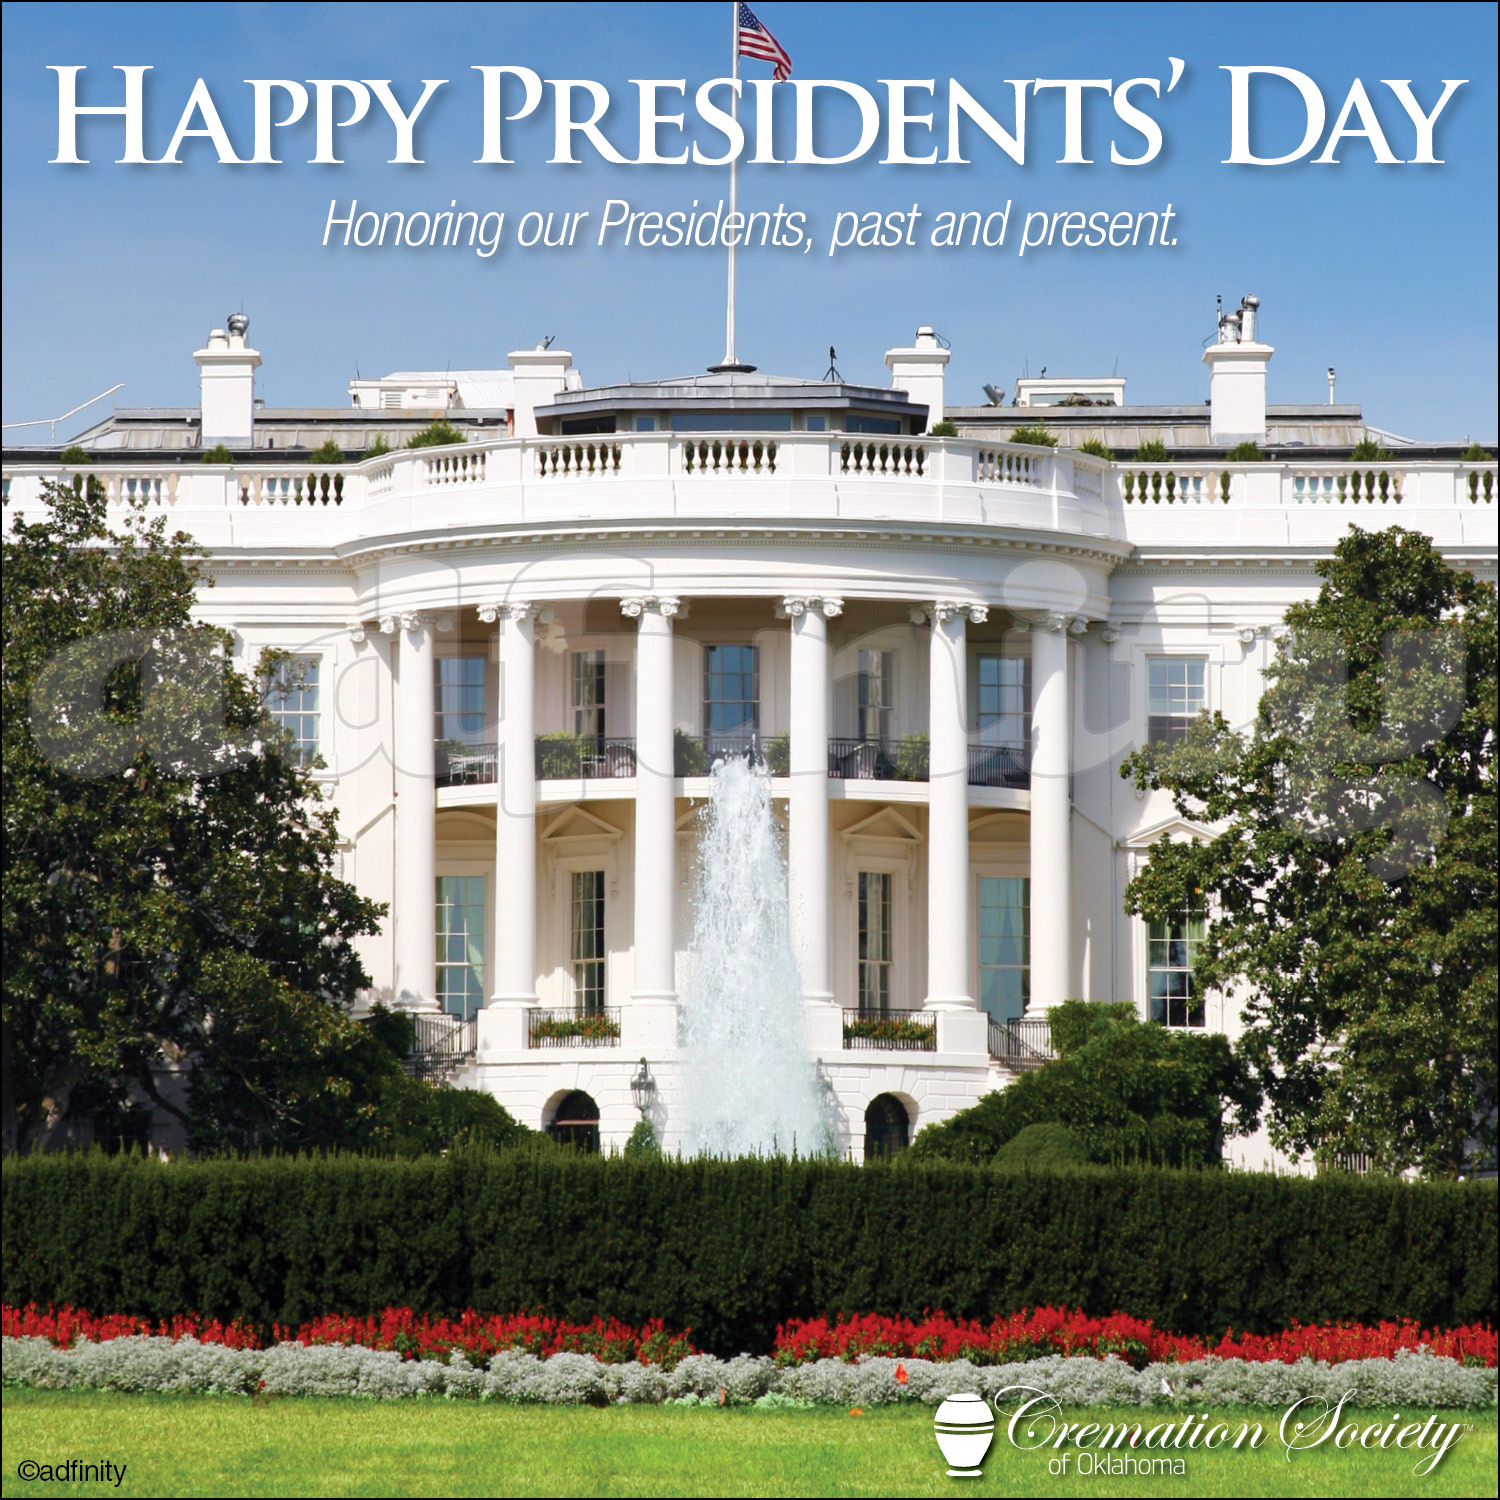 http://www.adfinity.net/catalog/happy-presidents-day-white-house-facebook/